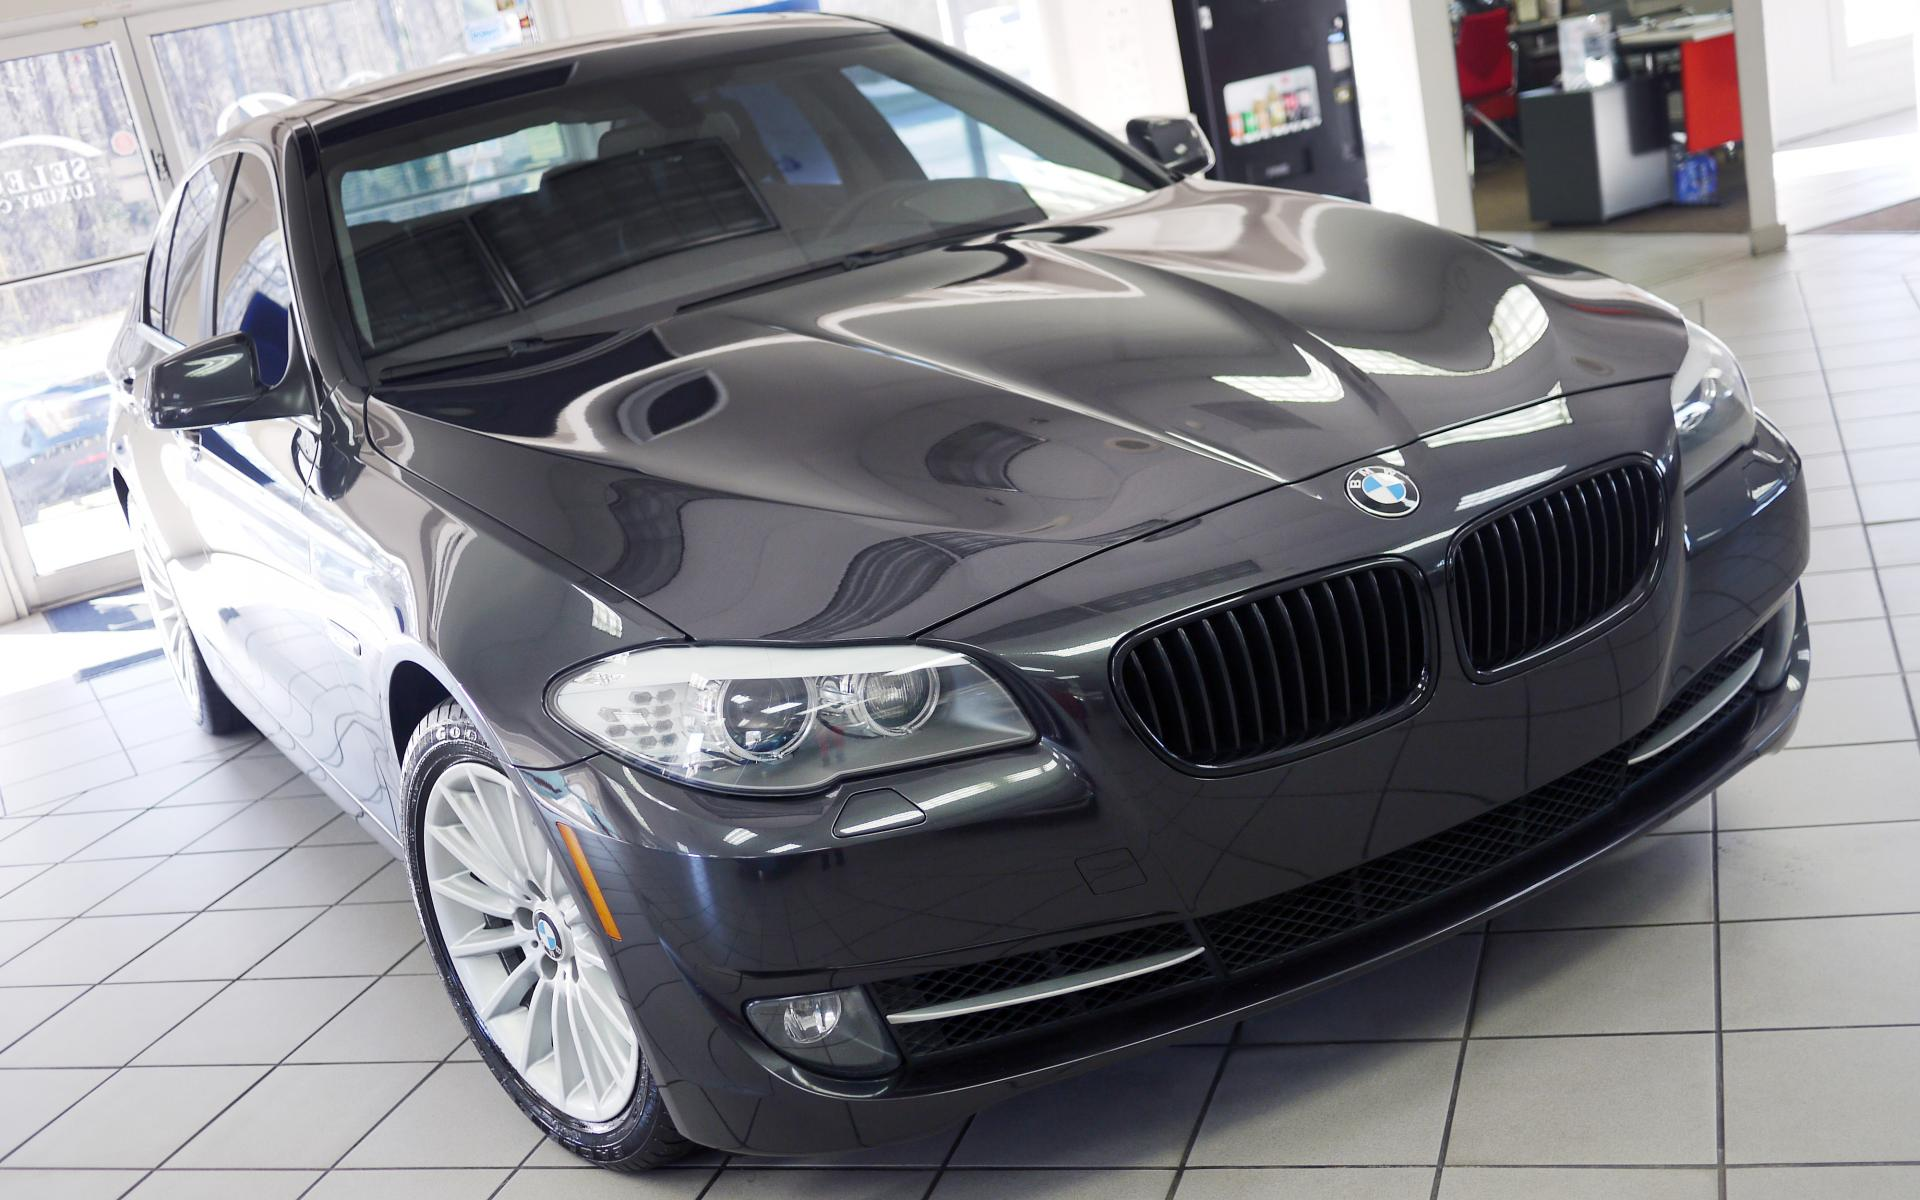 used 2013 bmw 5 series 535i xdrive marietta ga. Black Bedroom Furniture Sets. Home Design Ideas